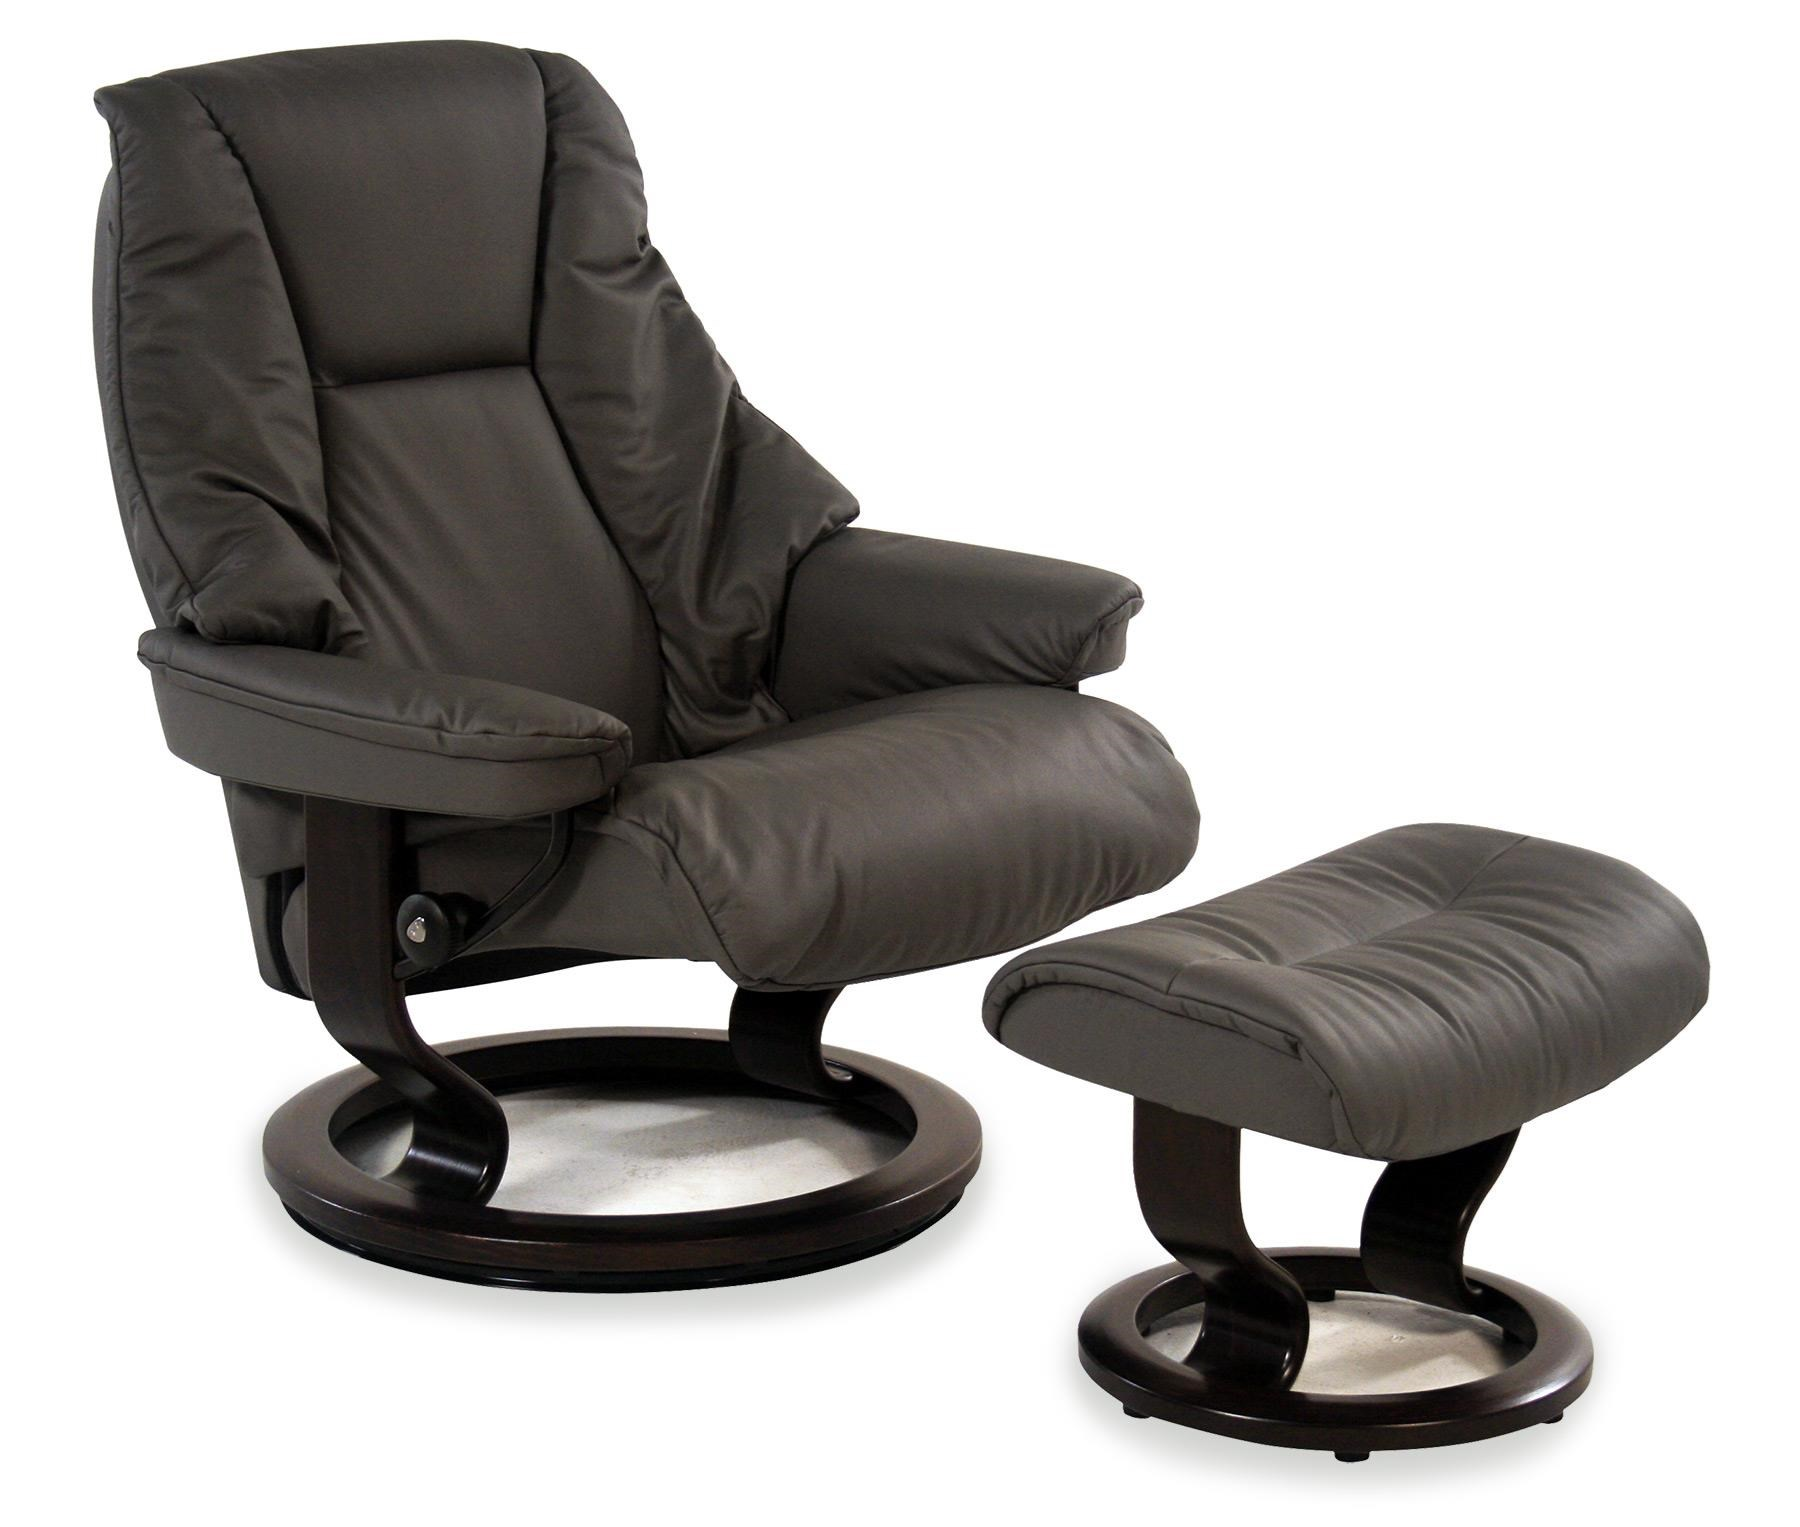 Will Chair Live Large Reclining Chair Ottoman Paloma Metal Grey W Classic Base By Stressless By Ekornes At Rotmans